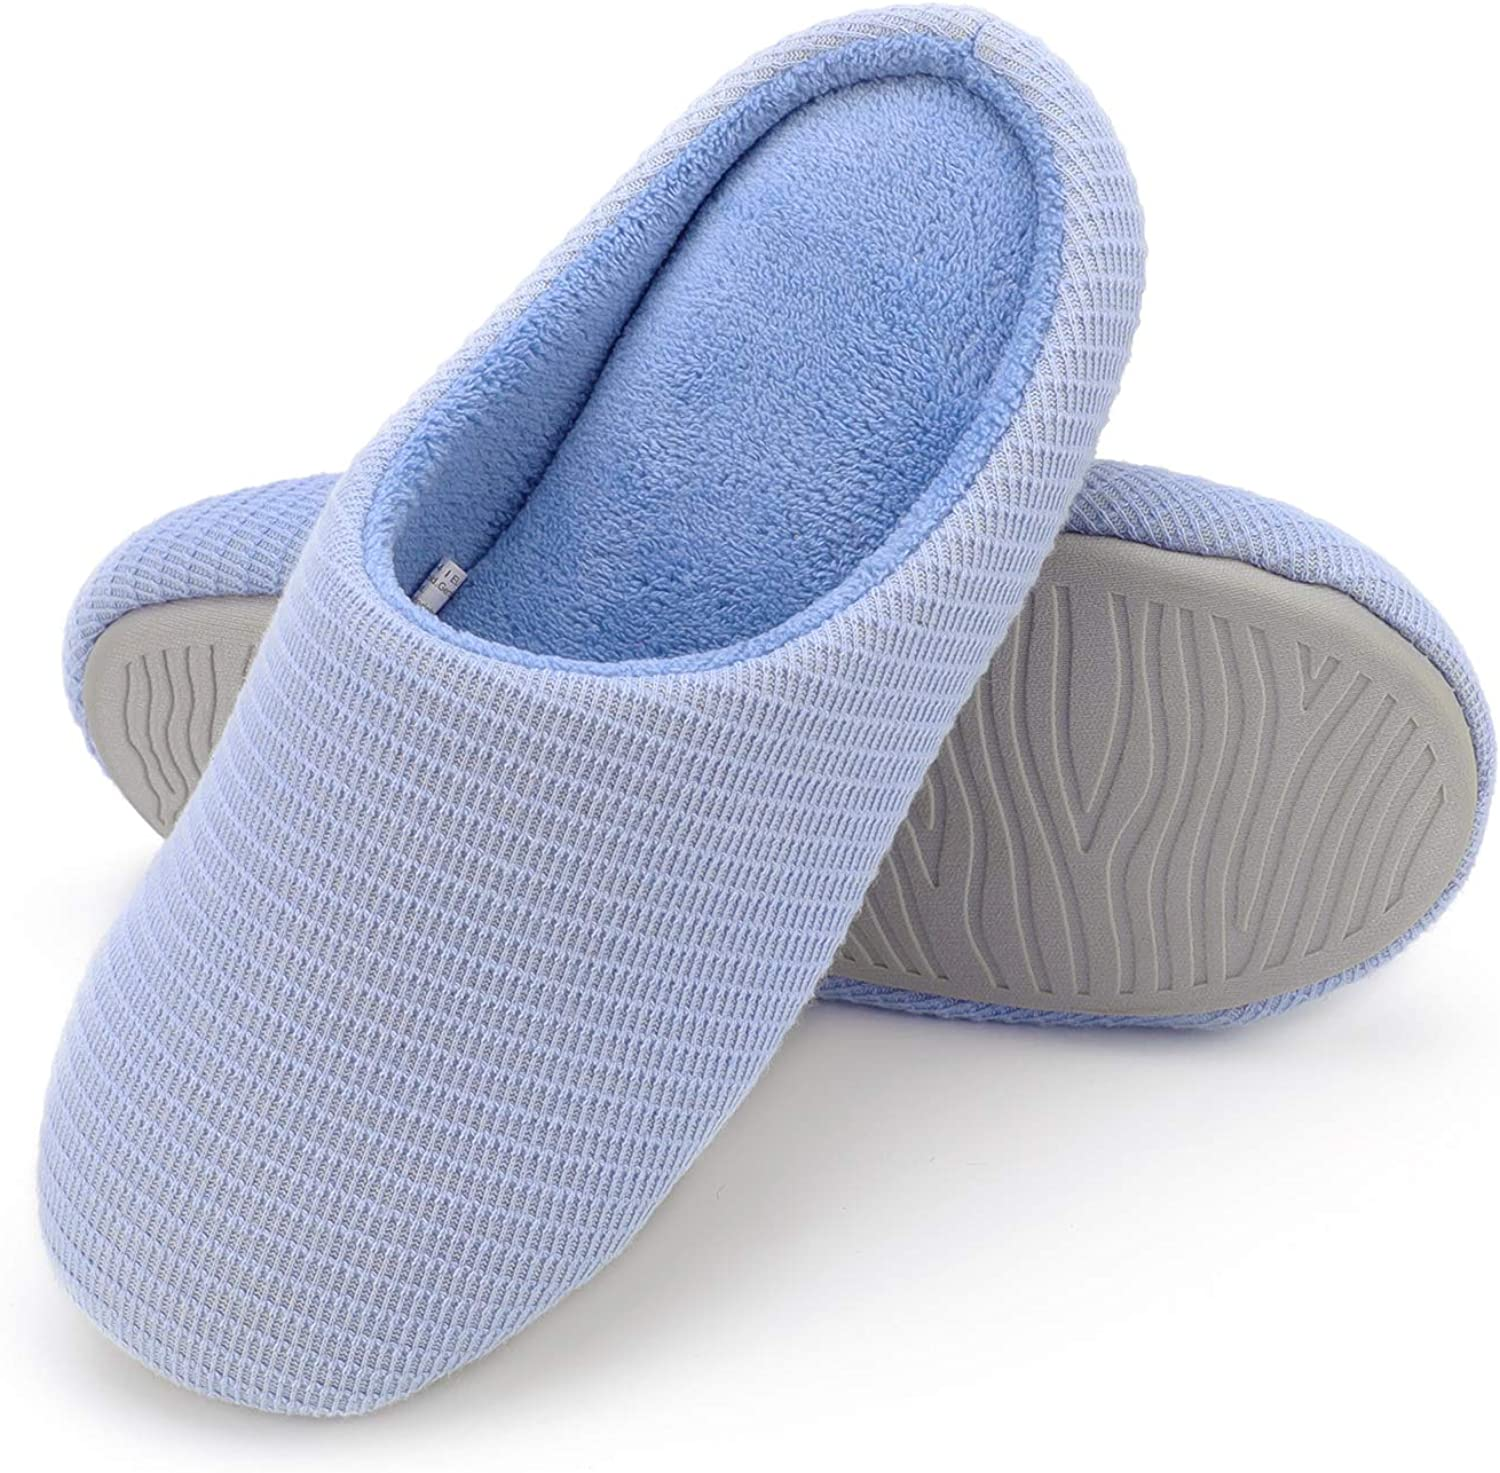 Wishcotton Women's Memory Foam Slippers Washable House shoes with Non-Slip Sole